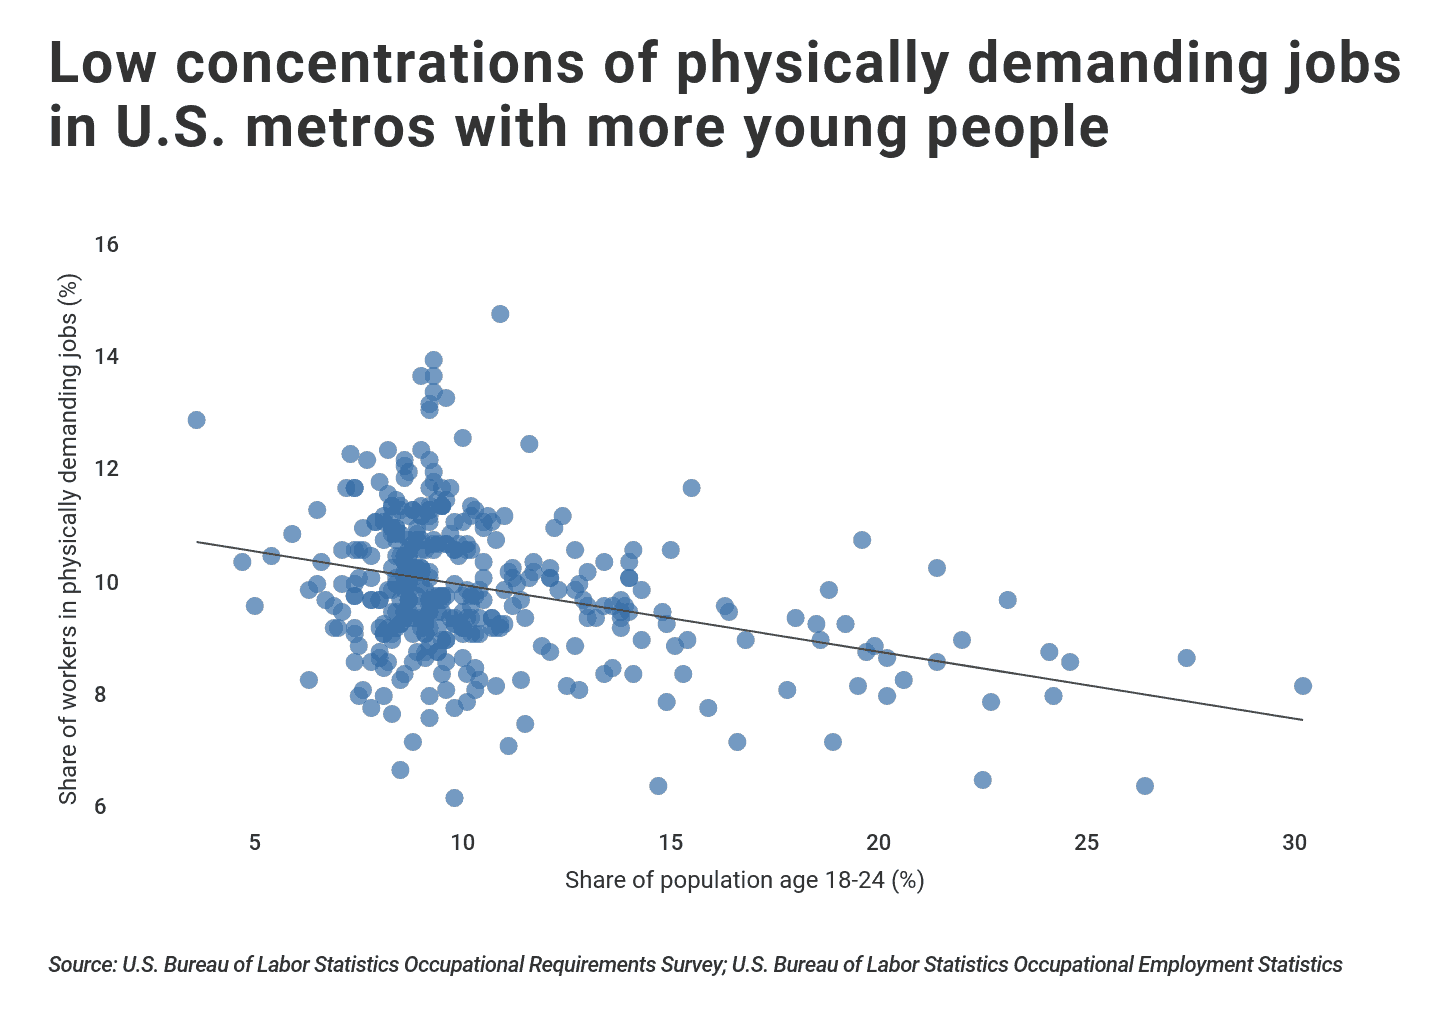 Share of workers in physically demanding jobs vs. age